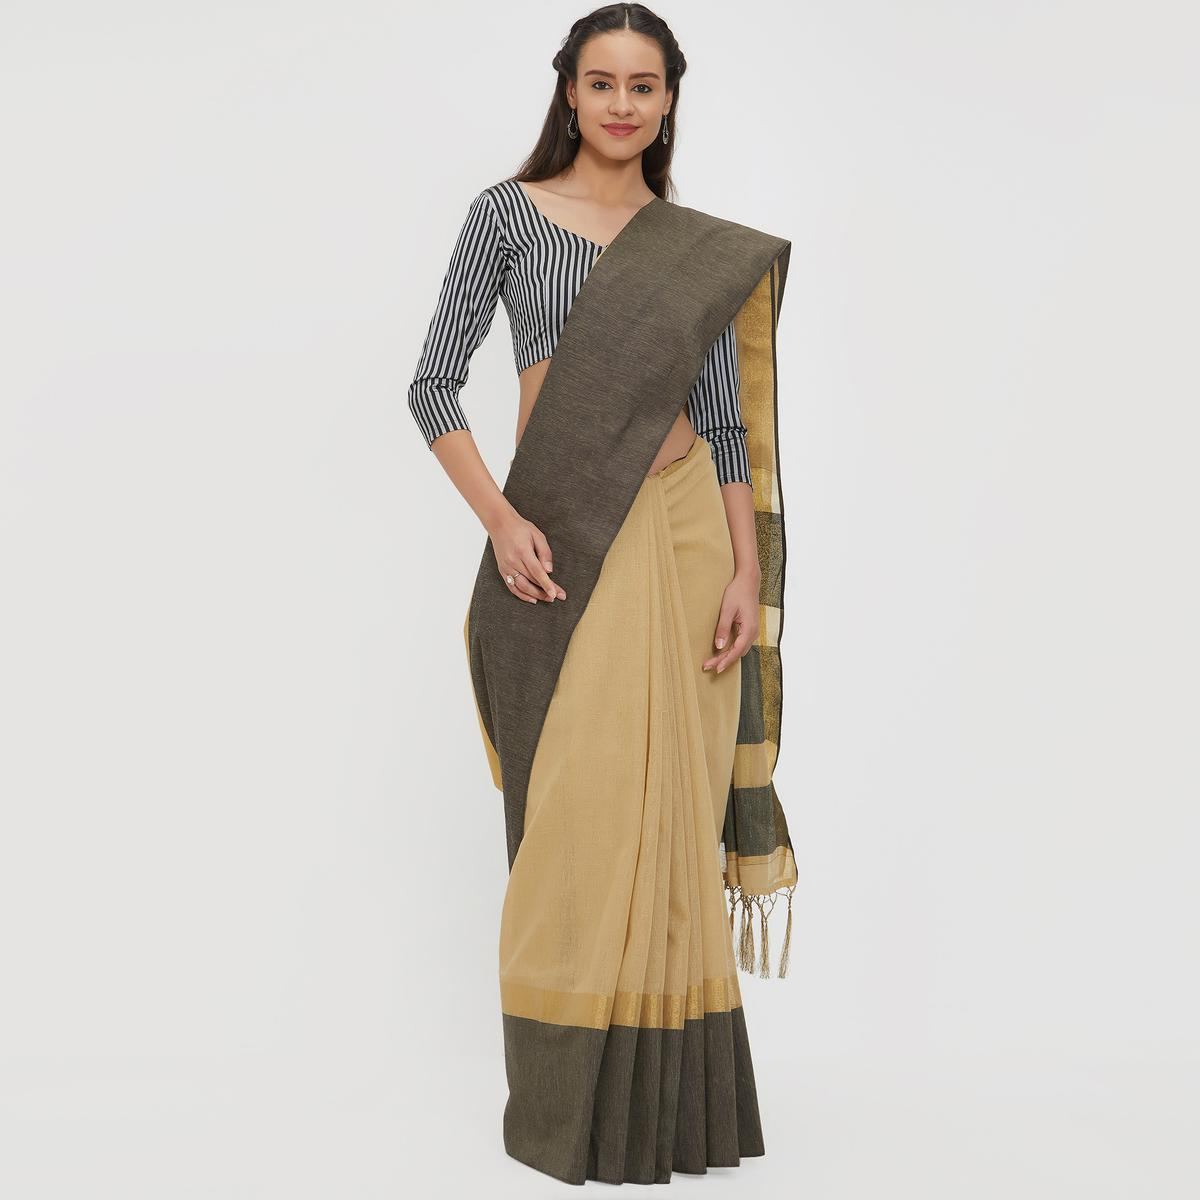 Classical Beige Colored Casual Wear Linen Saree With 2 Blouse Pieces